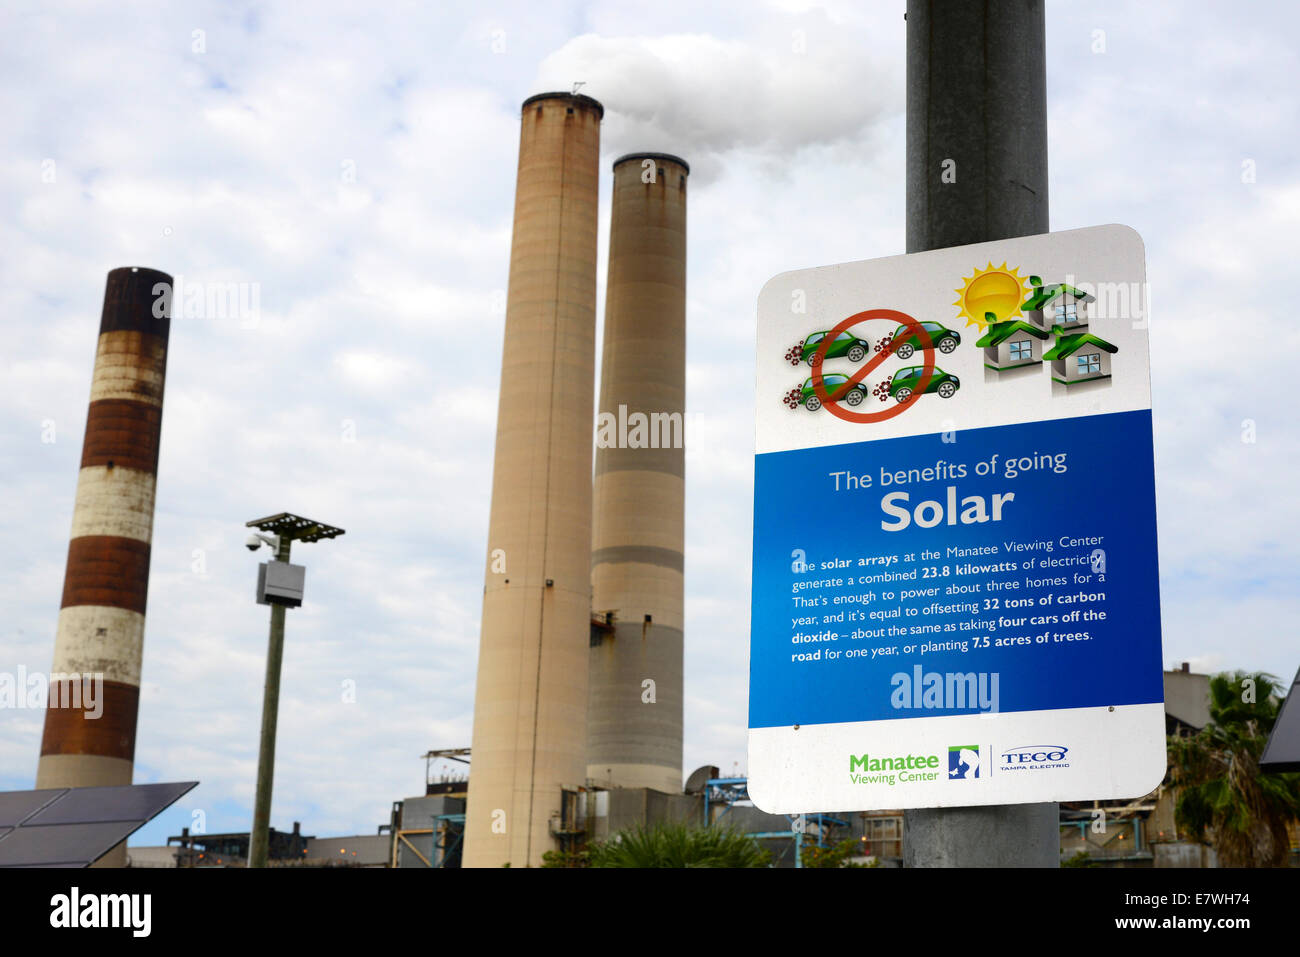 Solar energy used by TECO Tampa Electric Power company florida fl - Stock Image